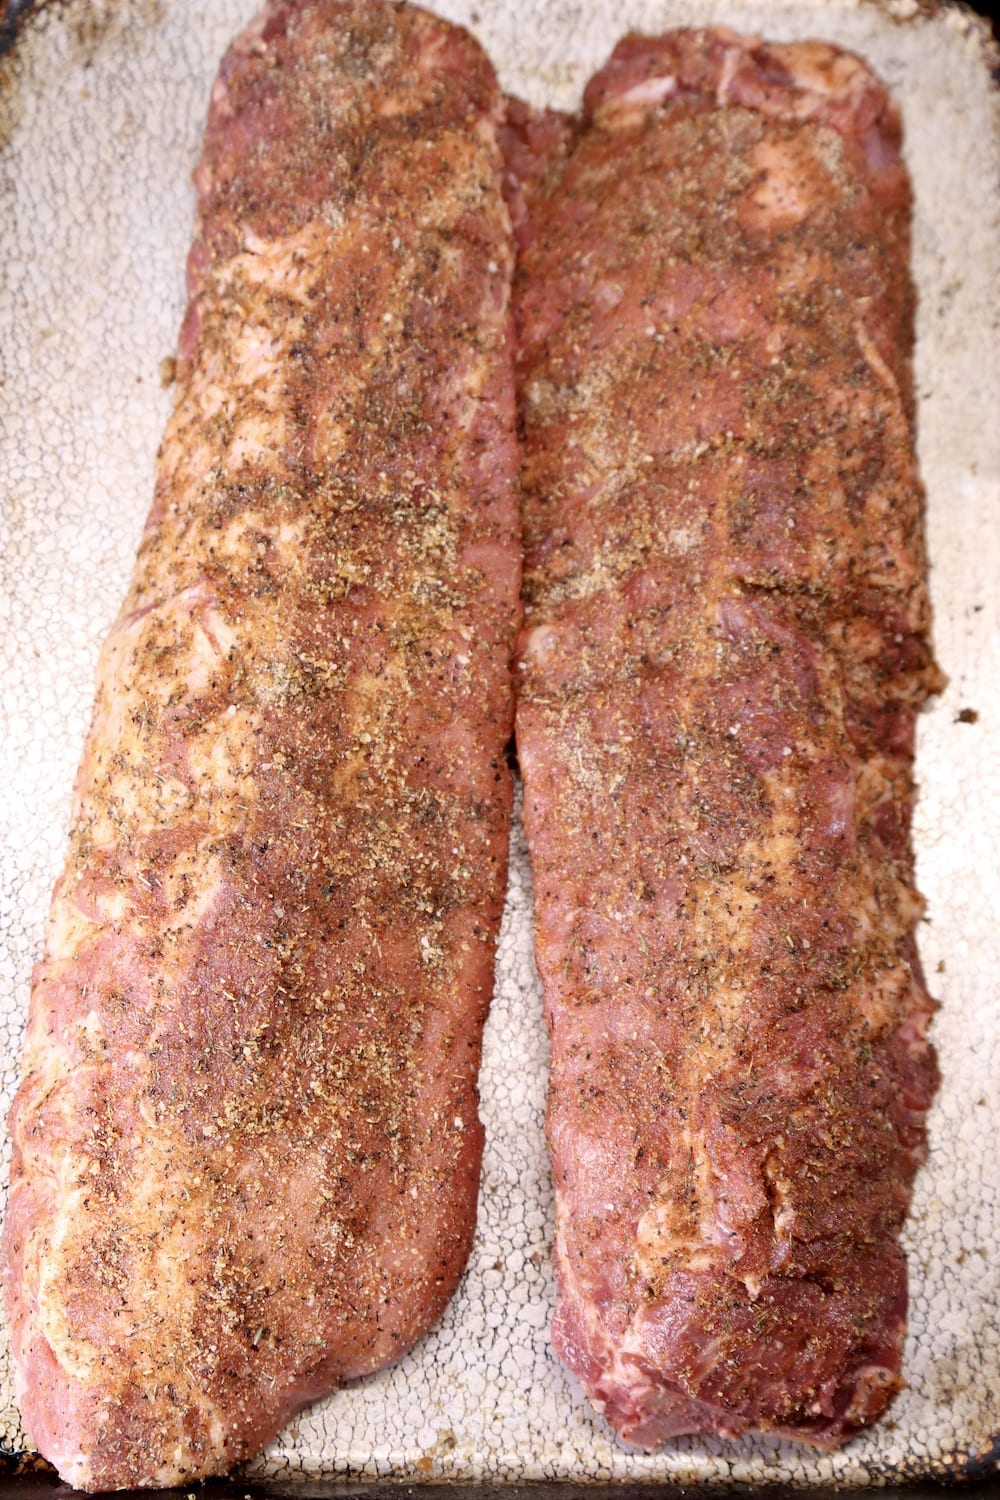 2 racks of ribs on a sheet pan with dry rub for grilling